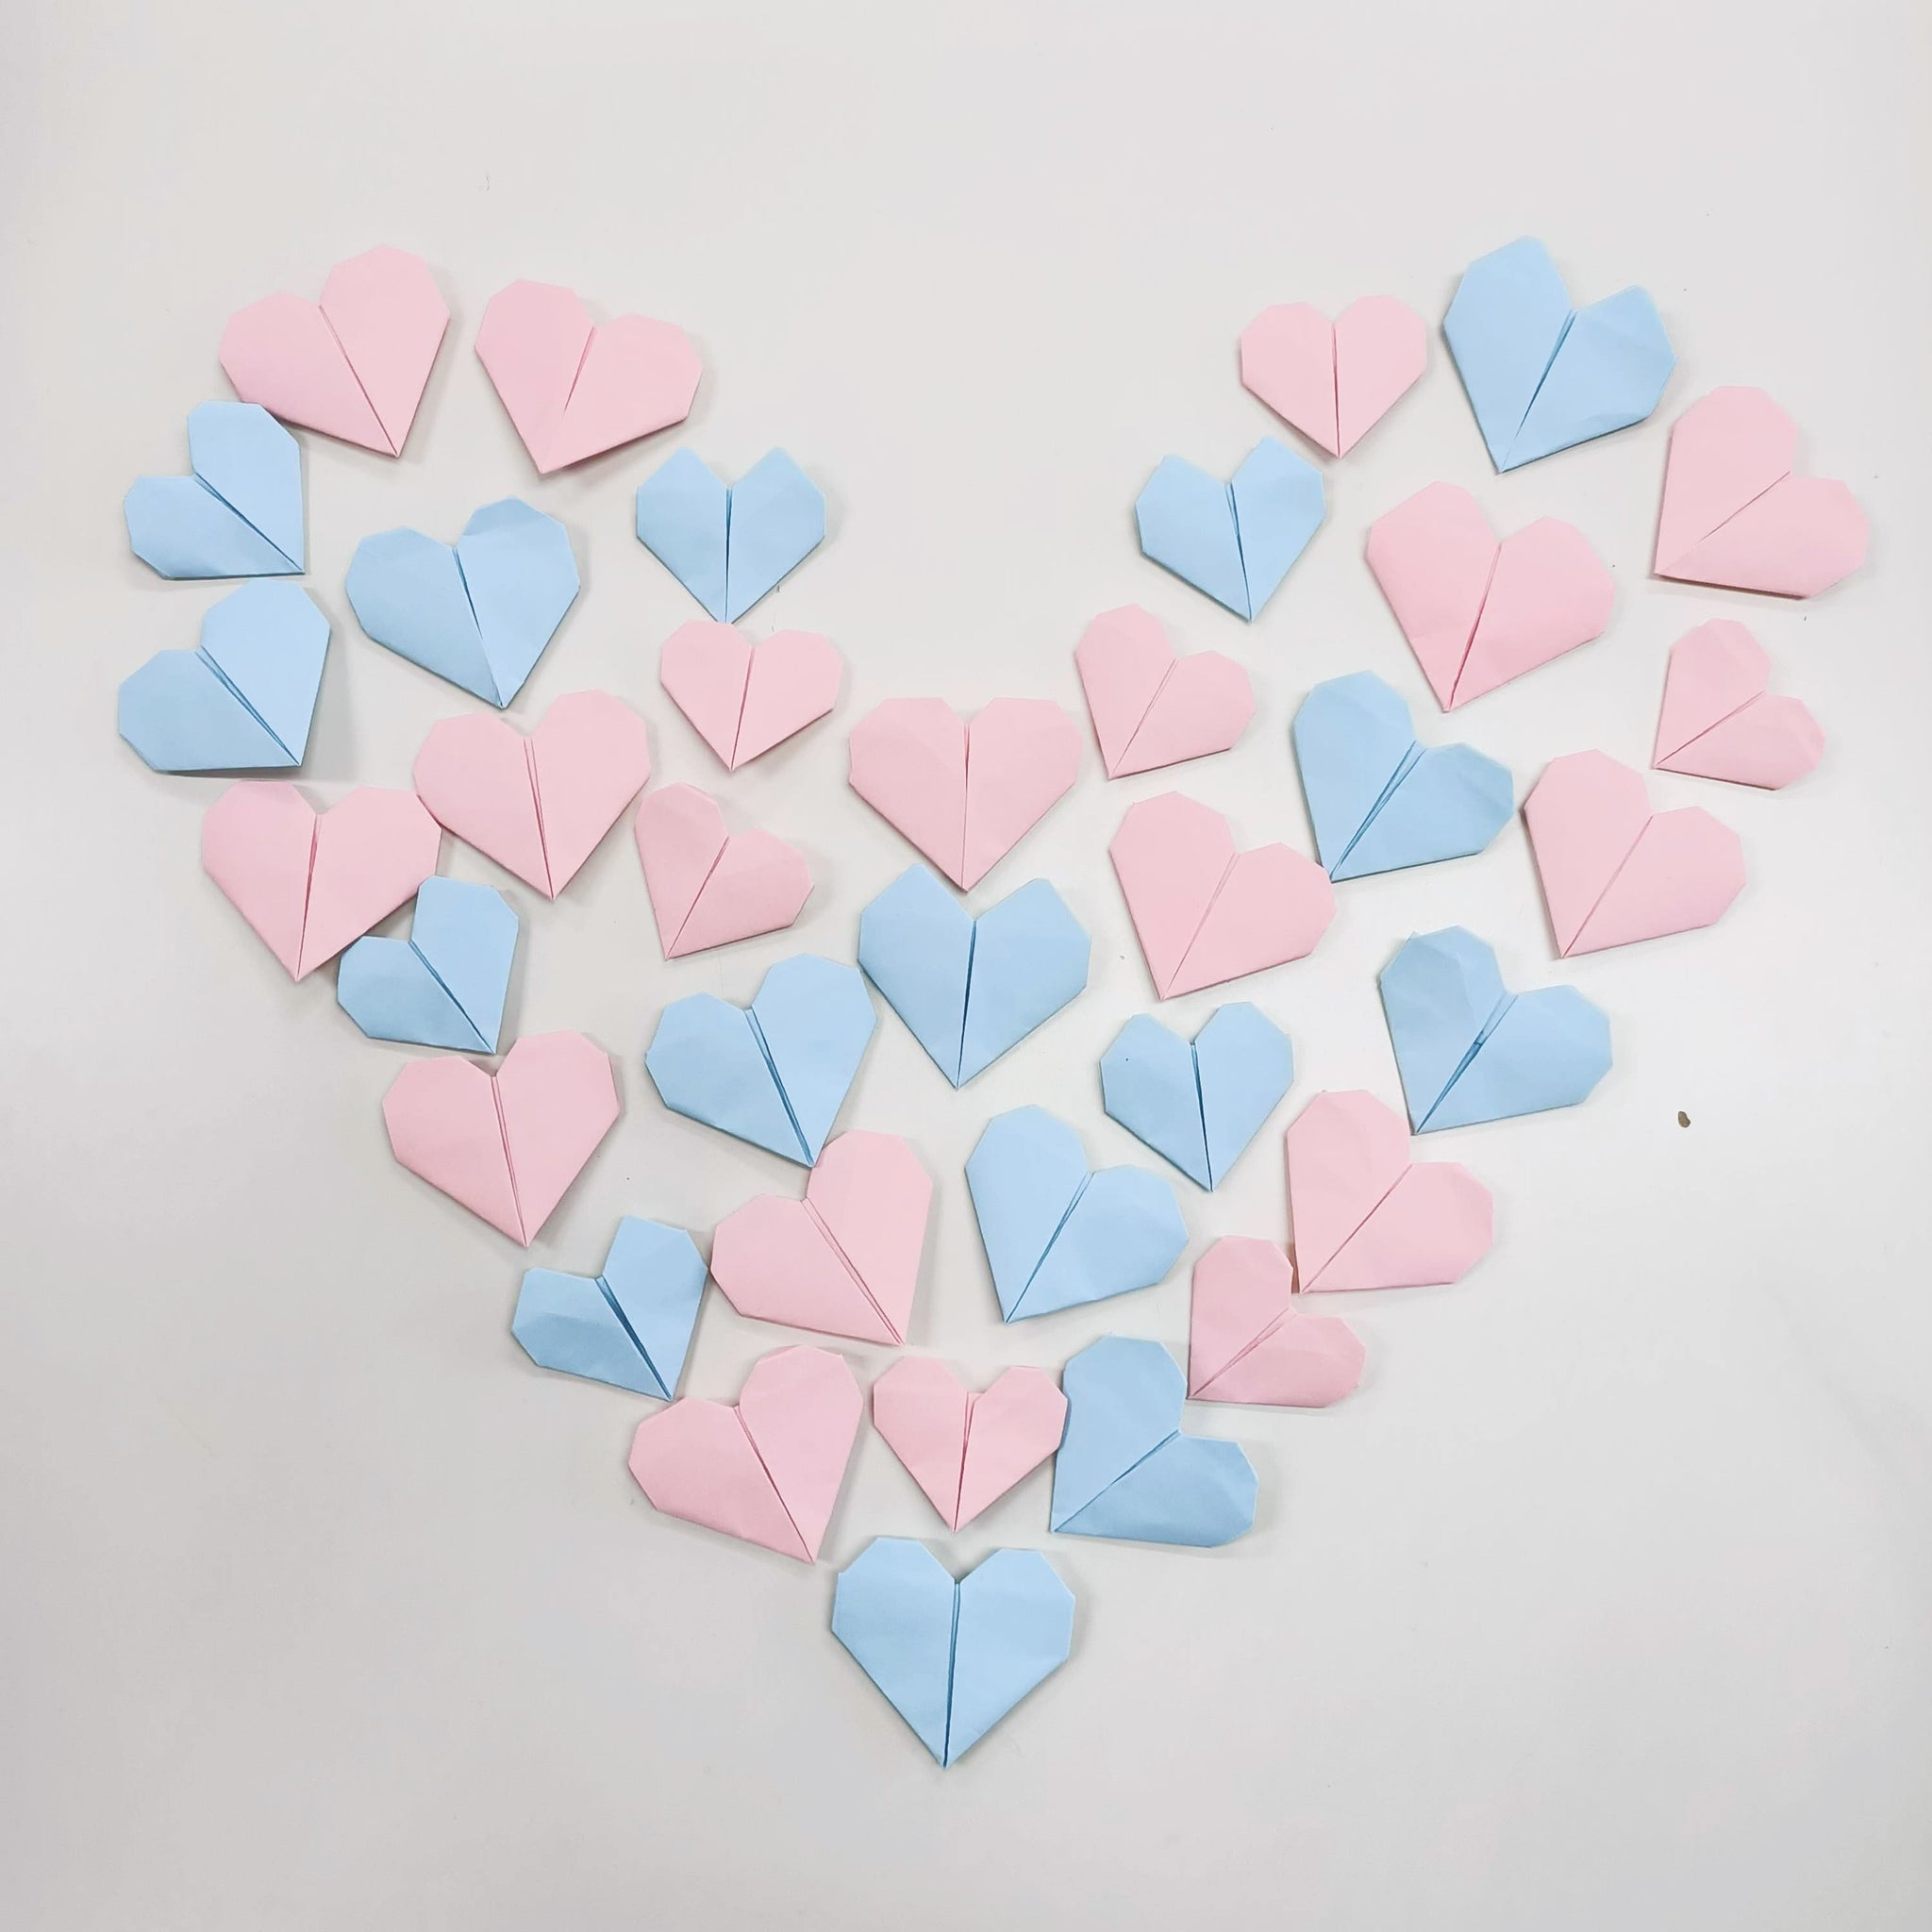 Heart Origami Love Letters Valentines Day DIY Craft